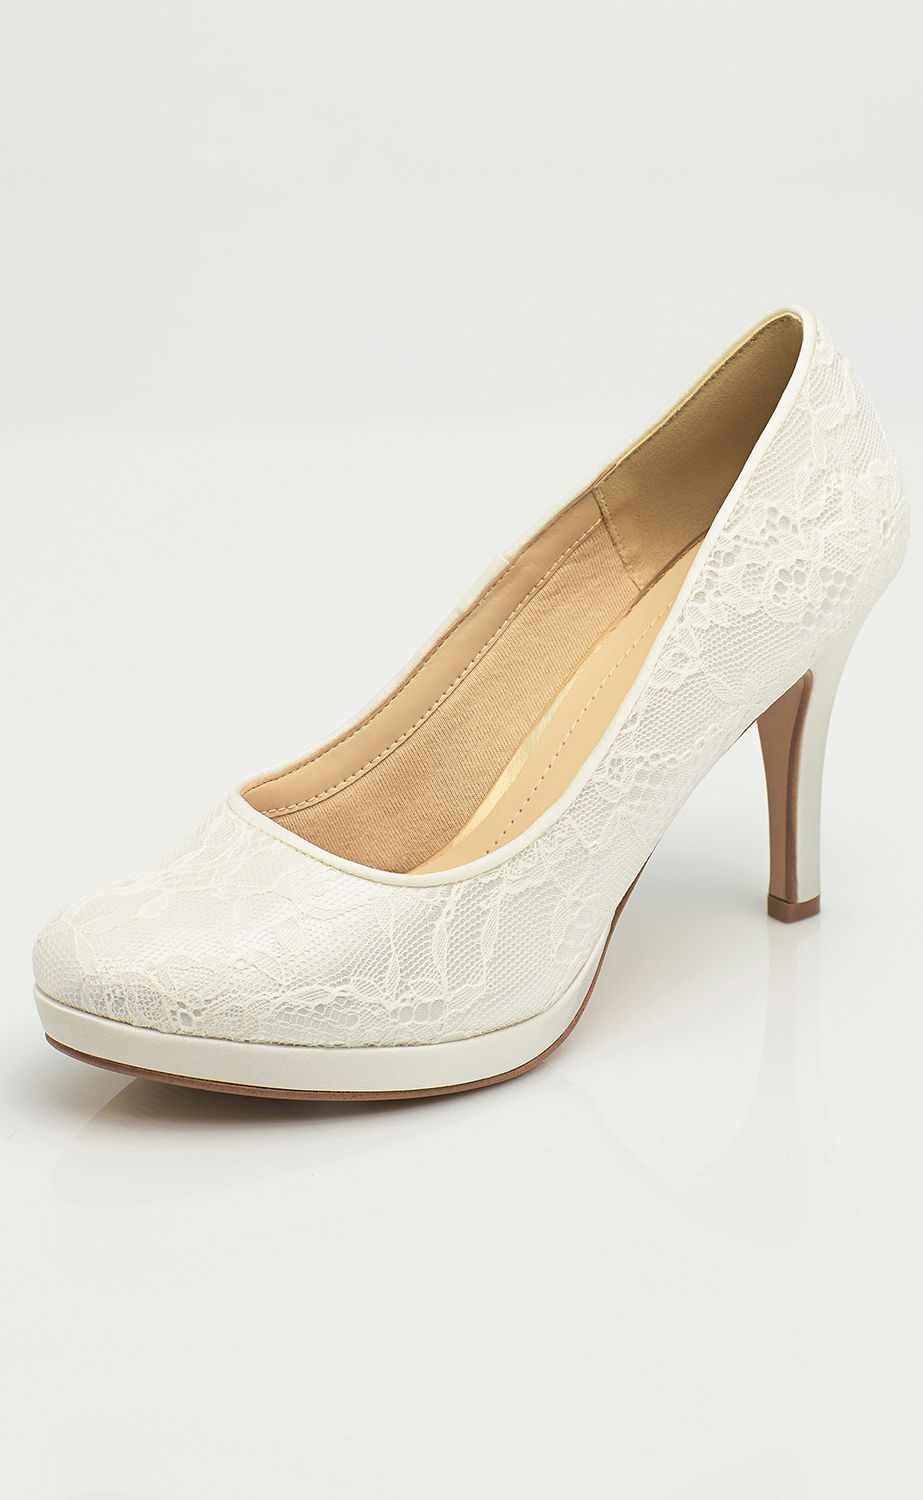 22914fefde3 Shoes SURI from AVALIA. Lined with super soft foam and beautifully ...